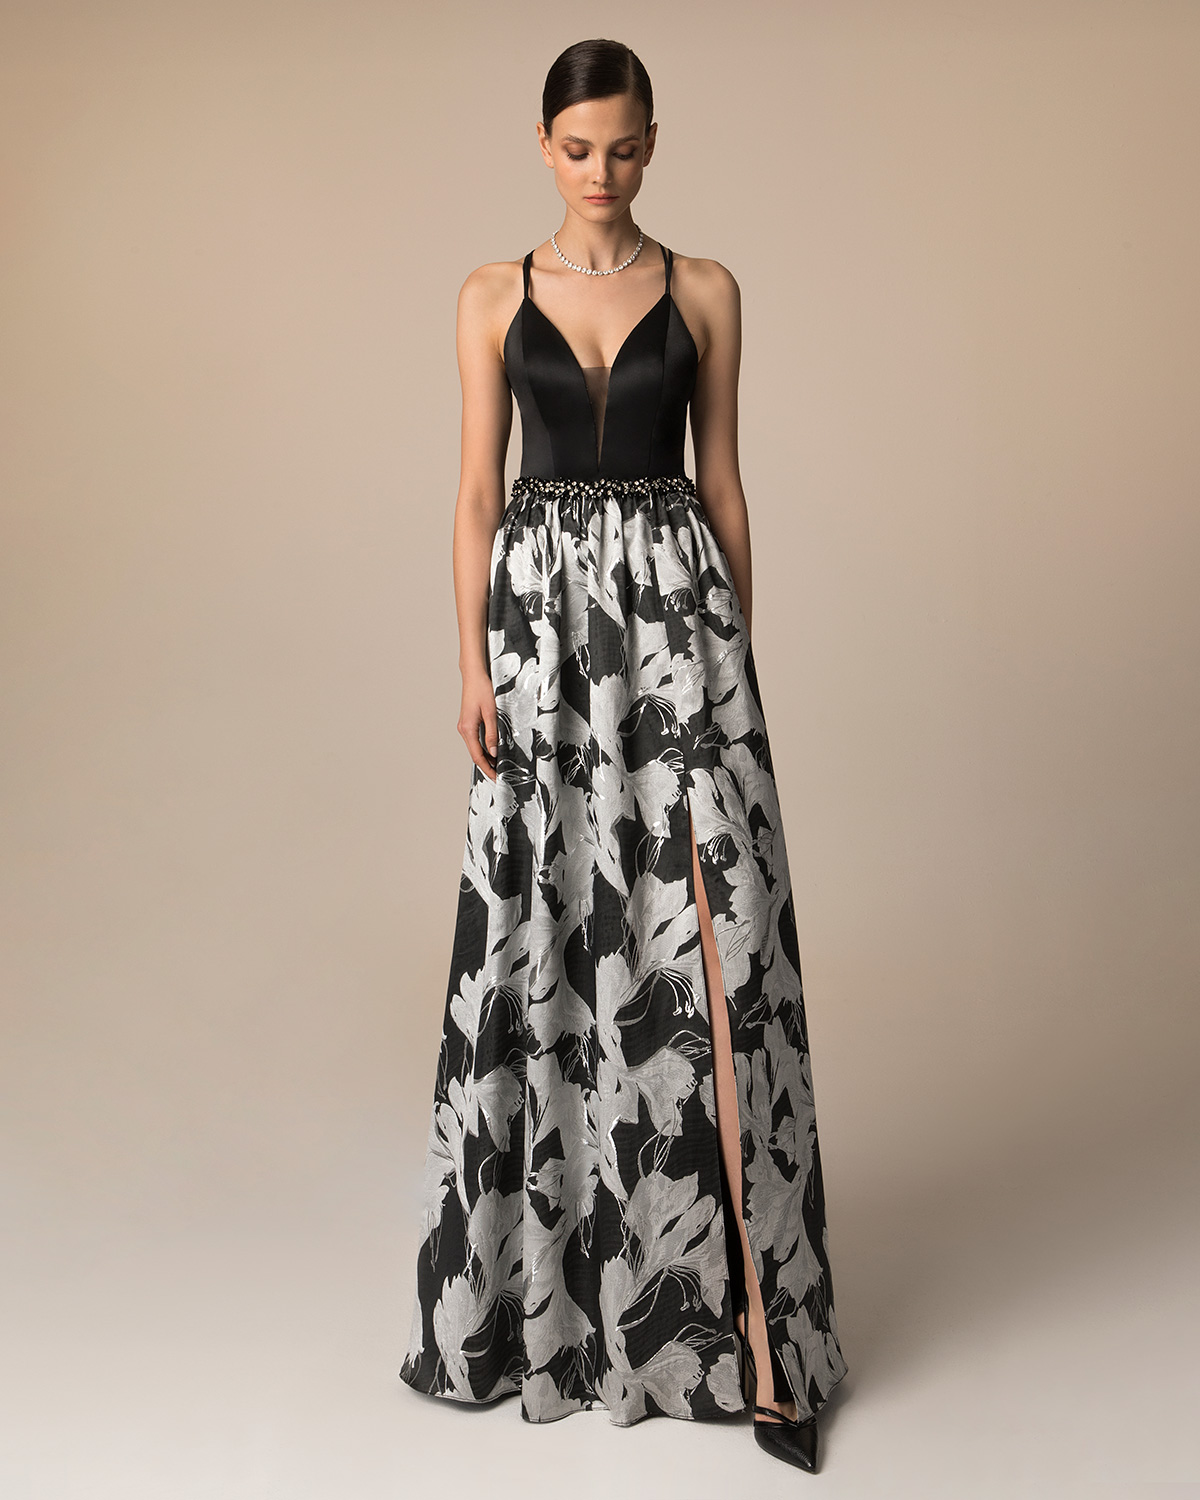 Evening Dresses / Long evening printed brocade dress with solid color top and beaded belt